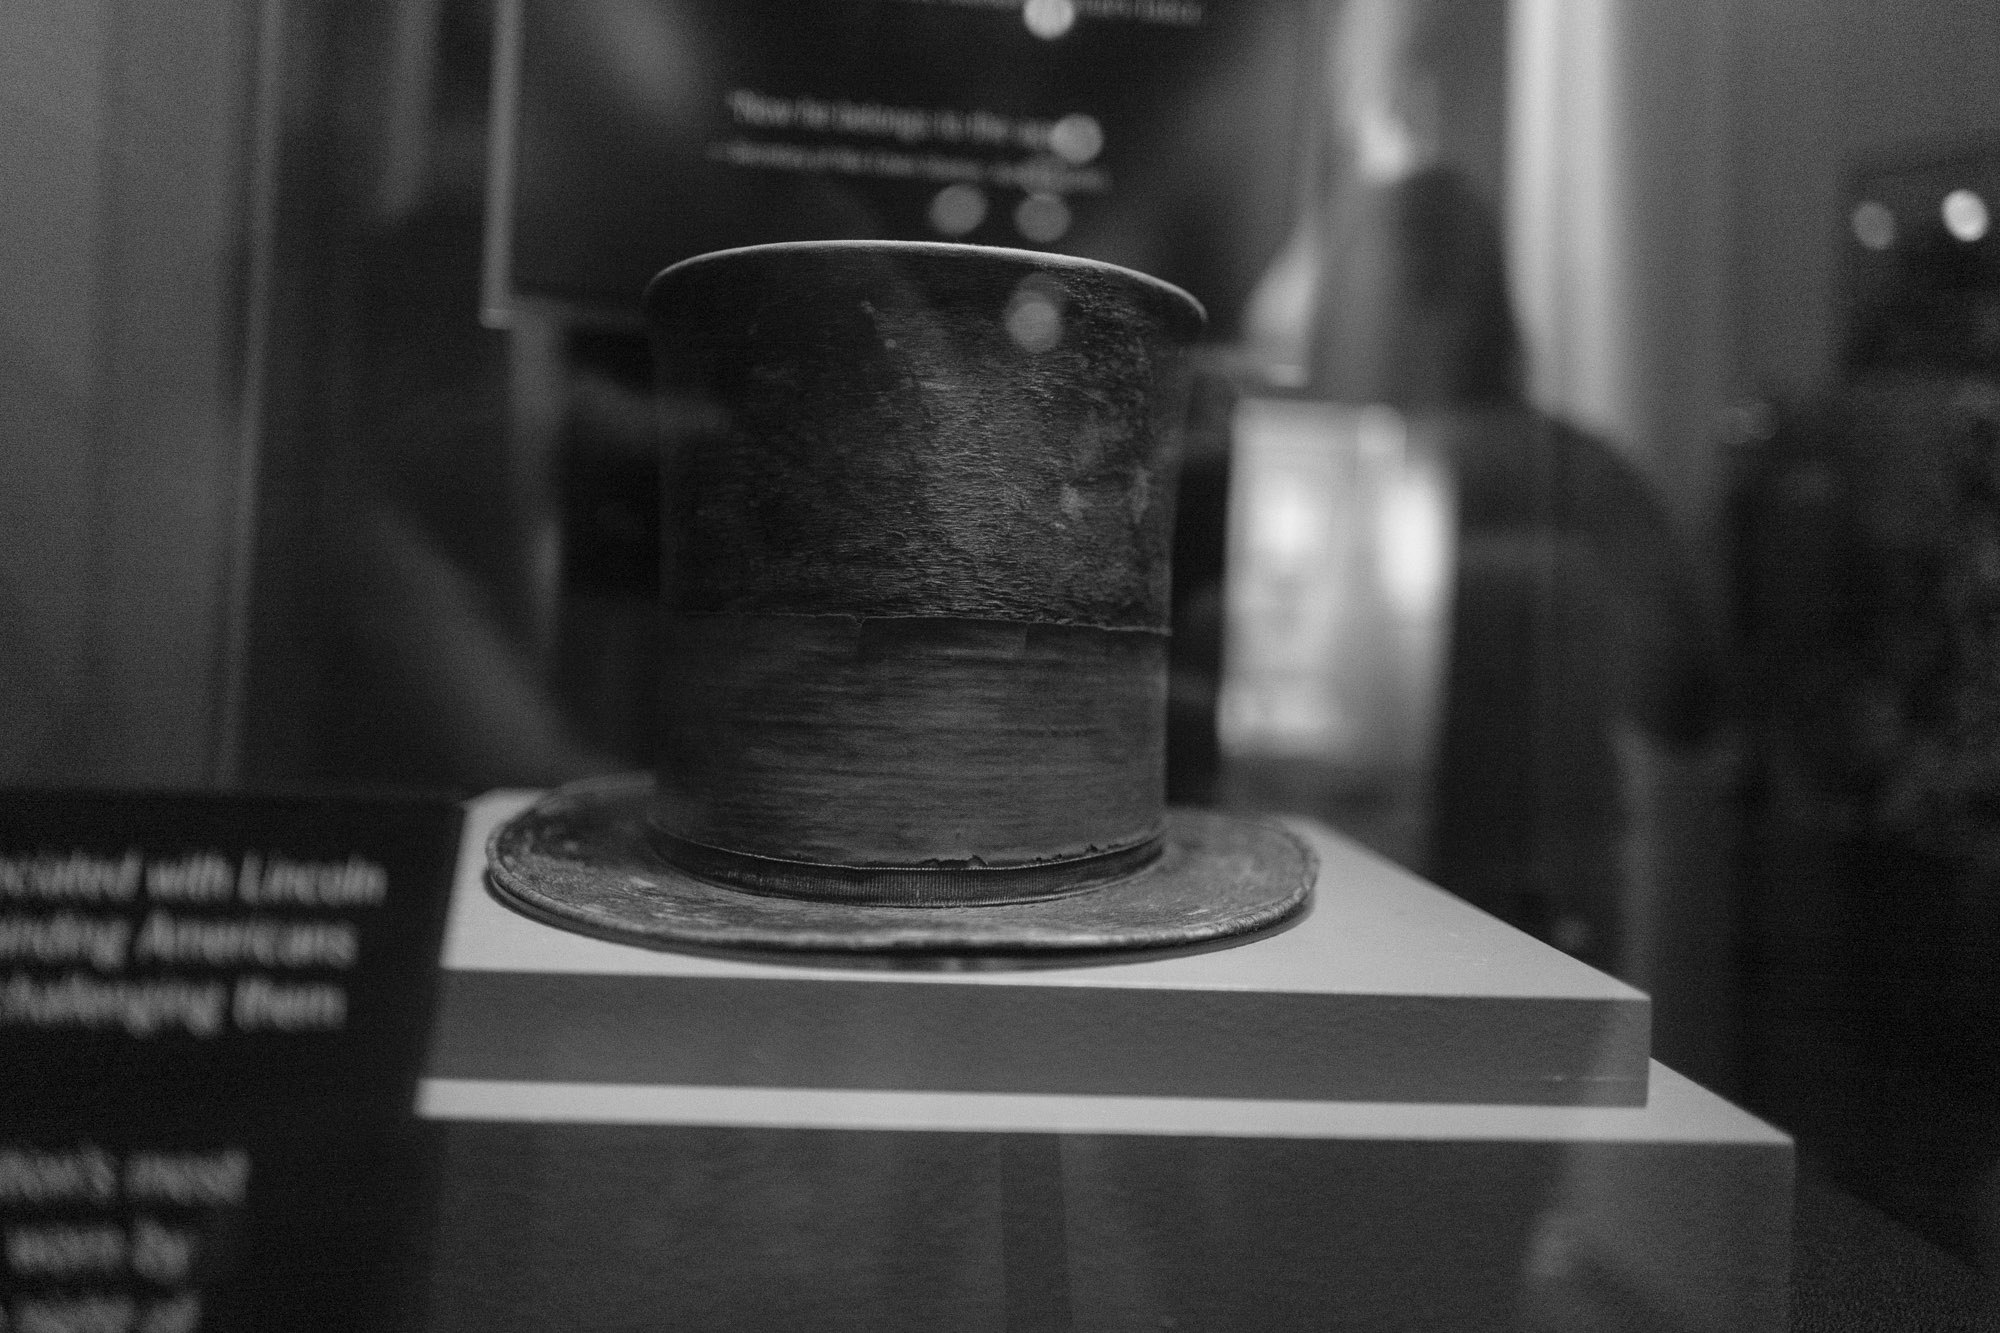 Lincoln's hat when shot  Sun 14:33:15